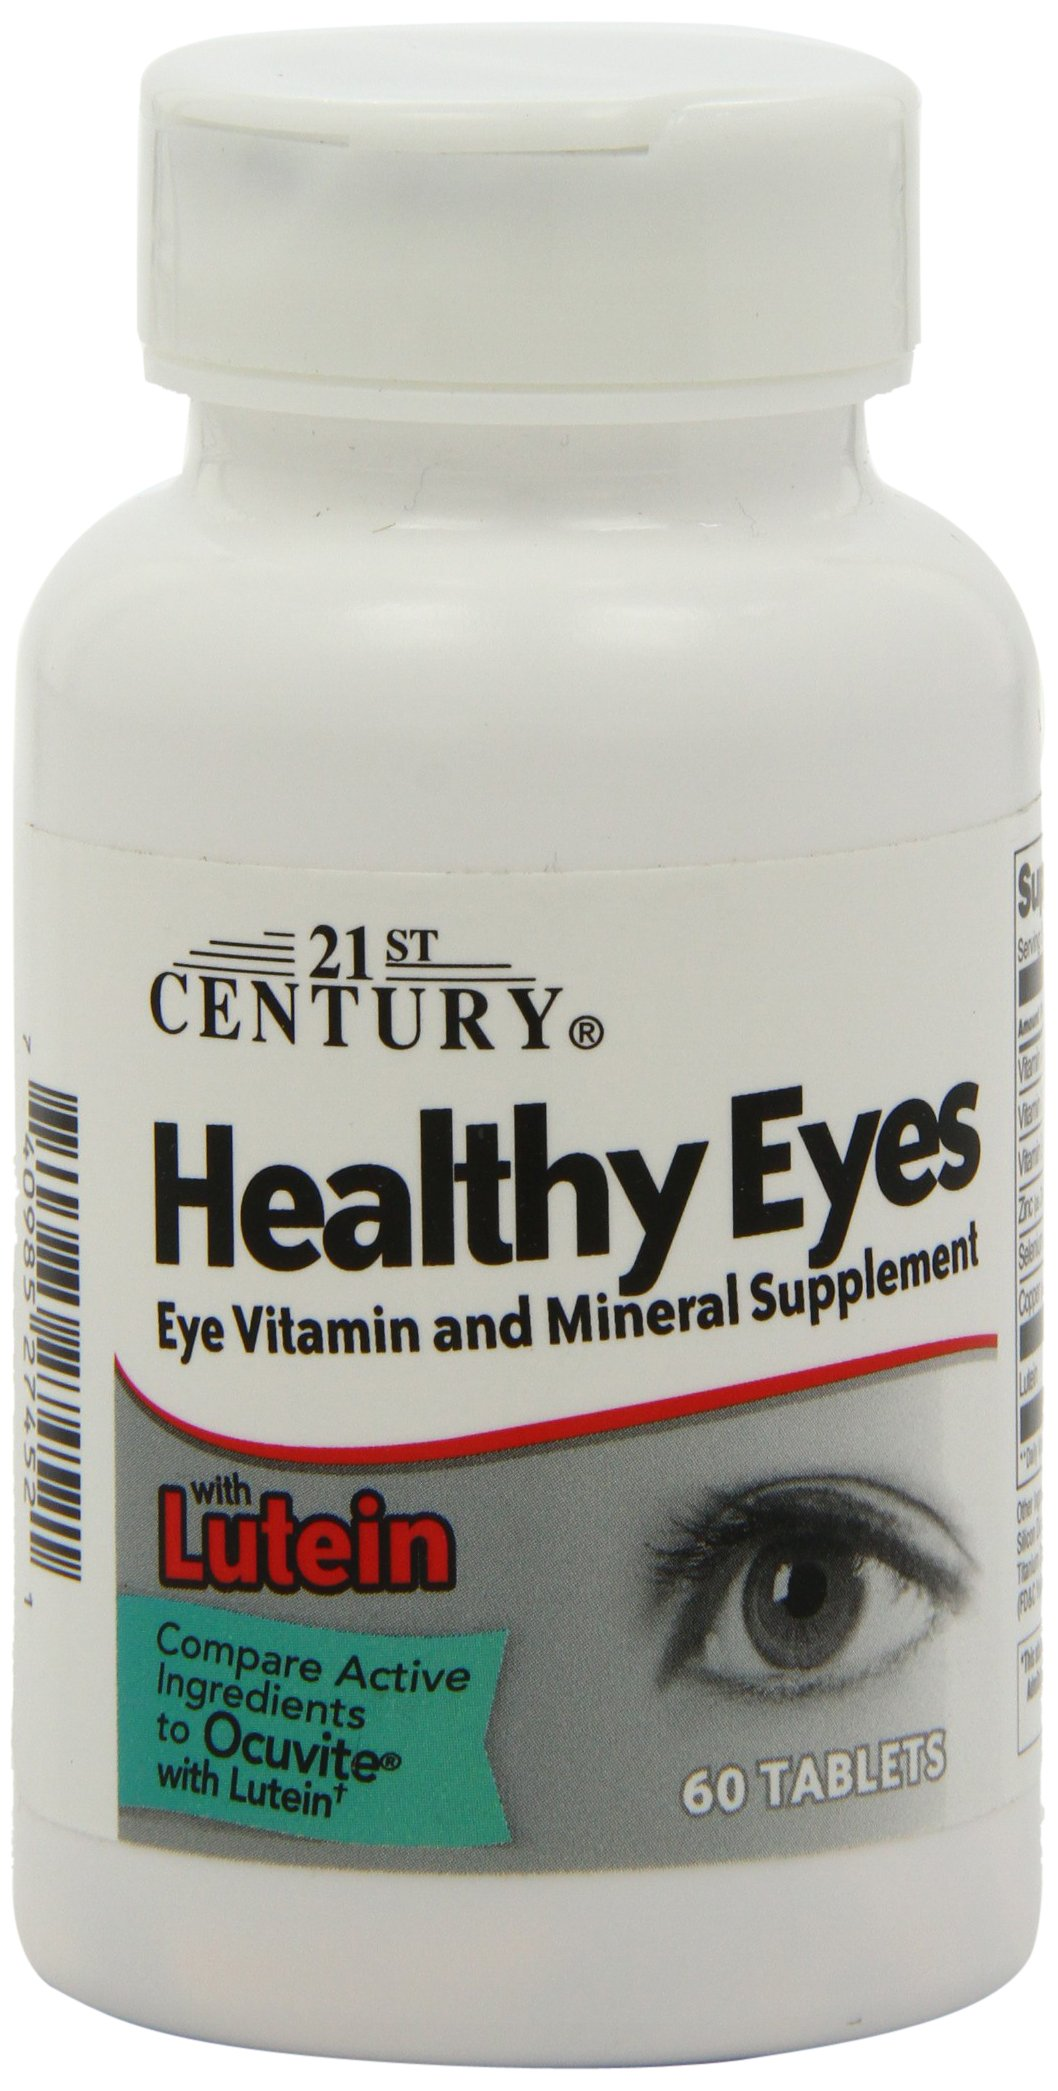 21st Century Healthy Eyes with Lutein Tablets, 60 Count by 21st Century (Image #1)